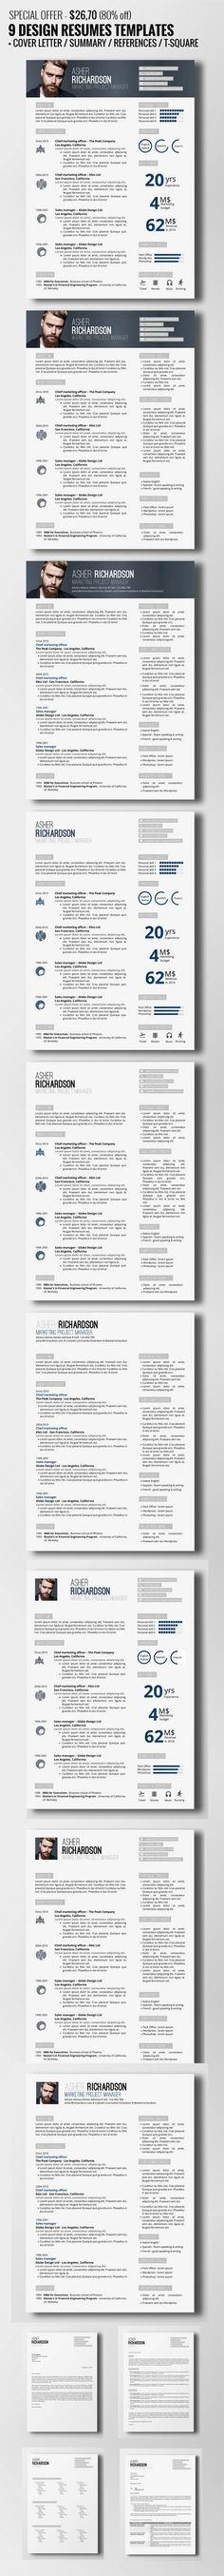 435 best Resume images on Pinterest Resume design, Design resume - ses resume